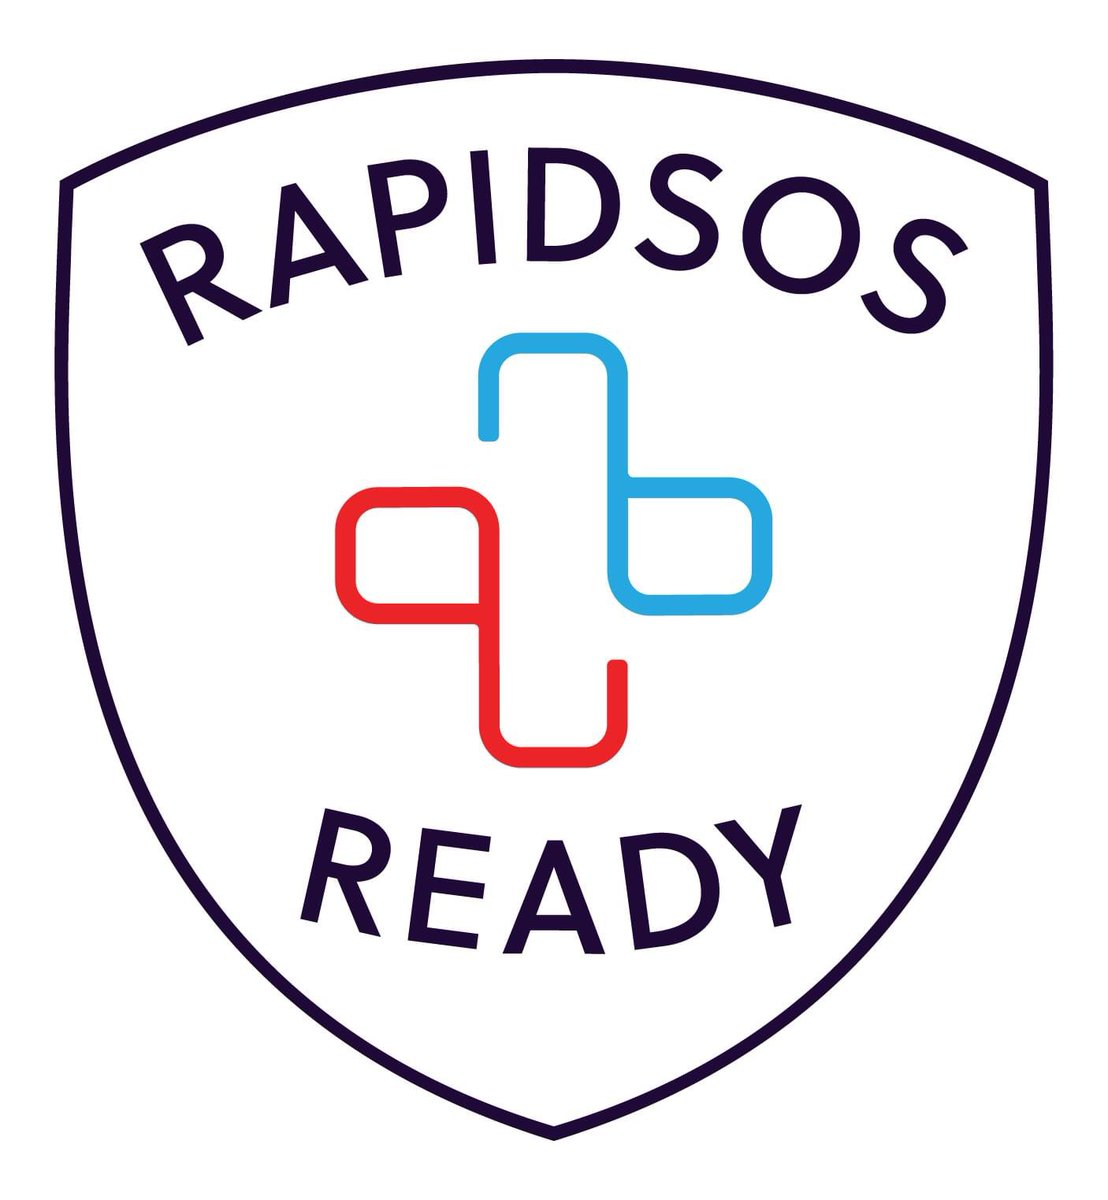 RapidSOS has created the world's first emergency response data platform that securely links life-saving data from connected devices or profiles to 911 and first responders in an emergency.  Click this link to register: https://t.co/FoTGqIDB8y https://t.co/e70MAOjYaK